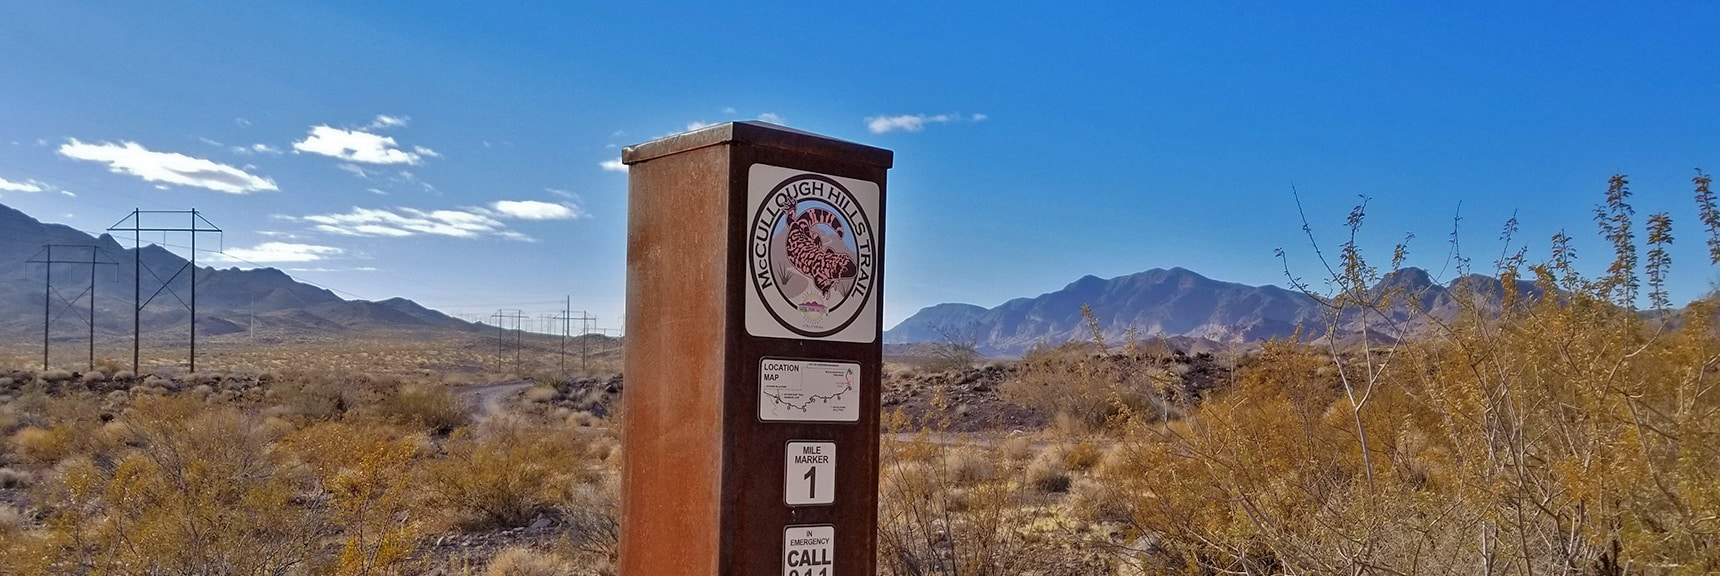 Mile 1 Marker on the McCullough Hills Trail   McCullough Hills Trail in Sloan Canyon National Conservation Area, Nevada